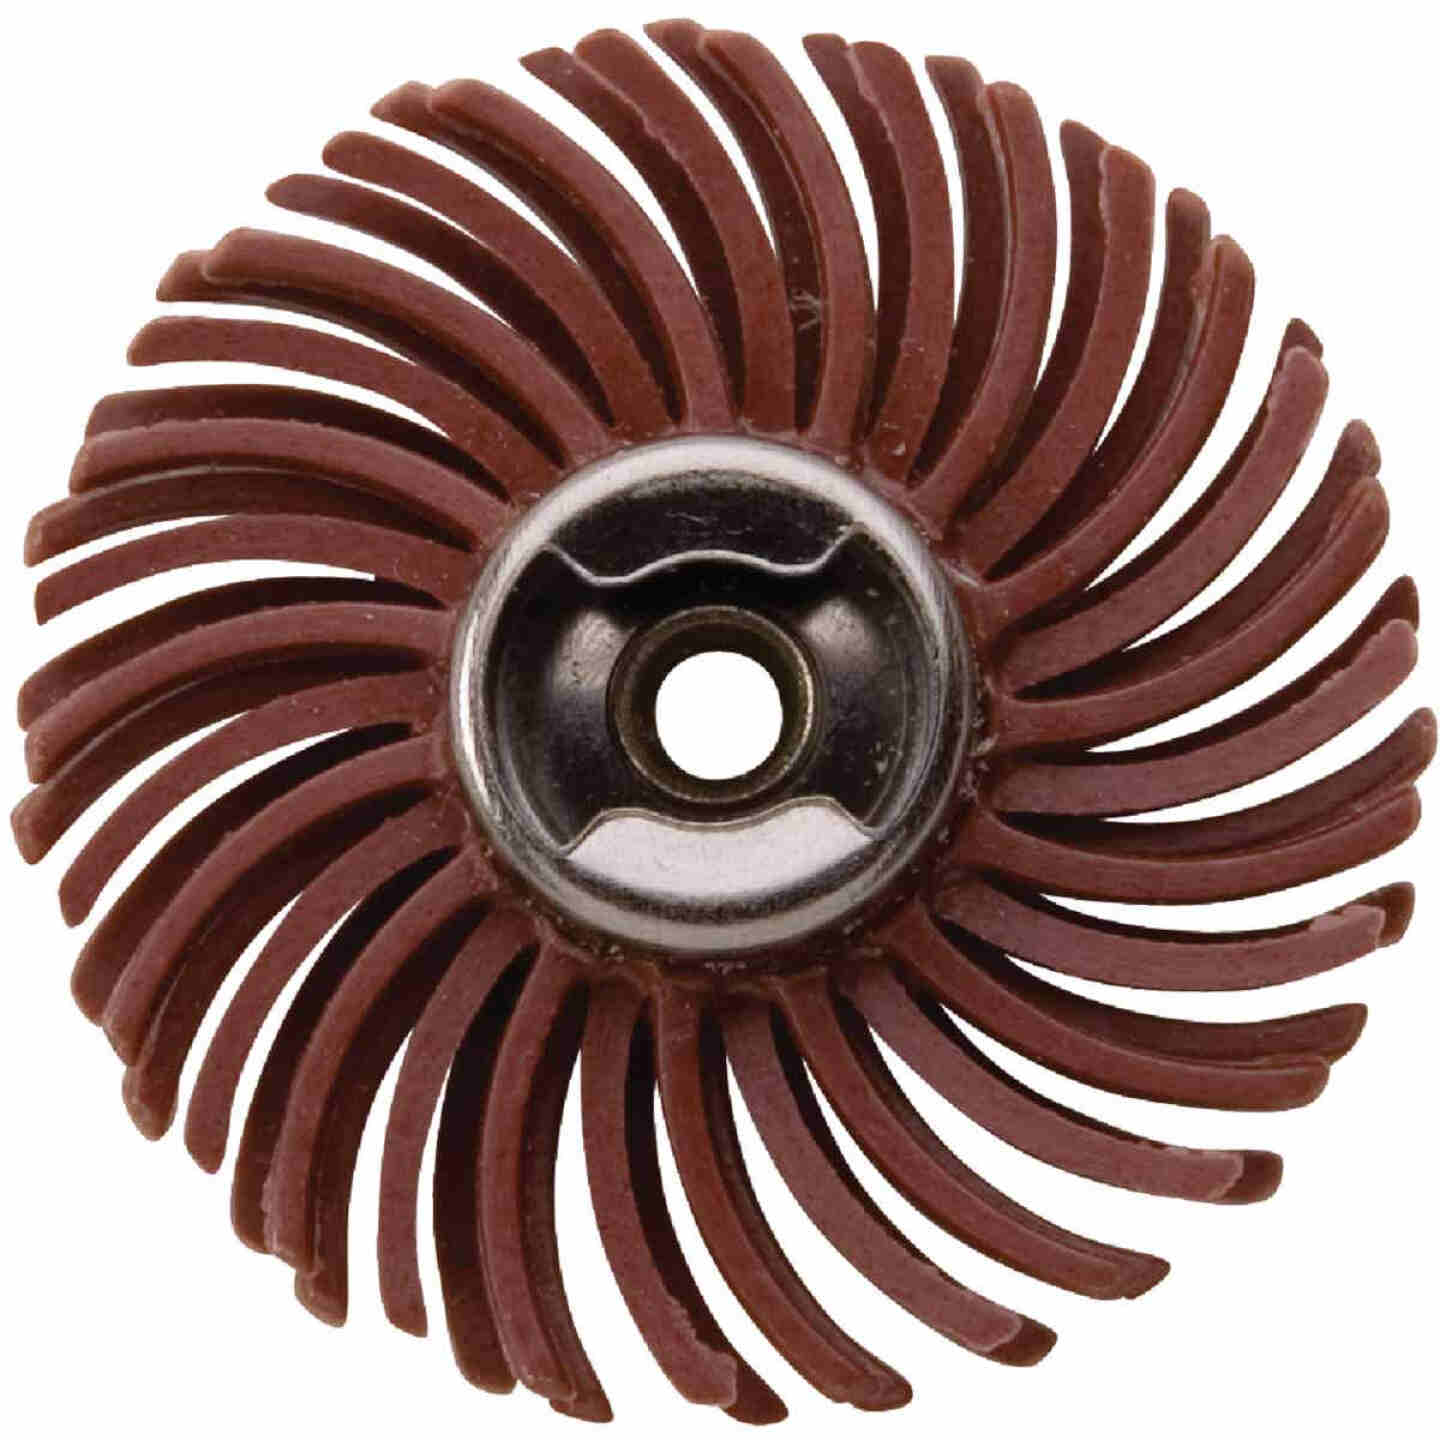 Dremel 1 In. 220G EZ Lock Abrasive Wheel Brush Image 1